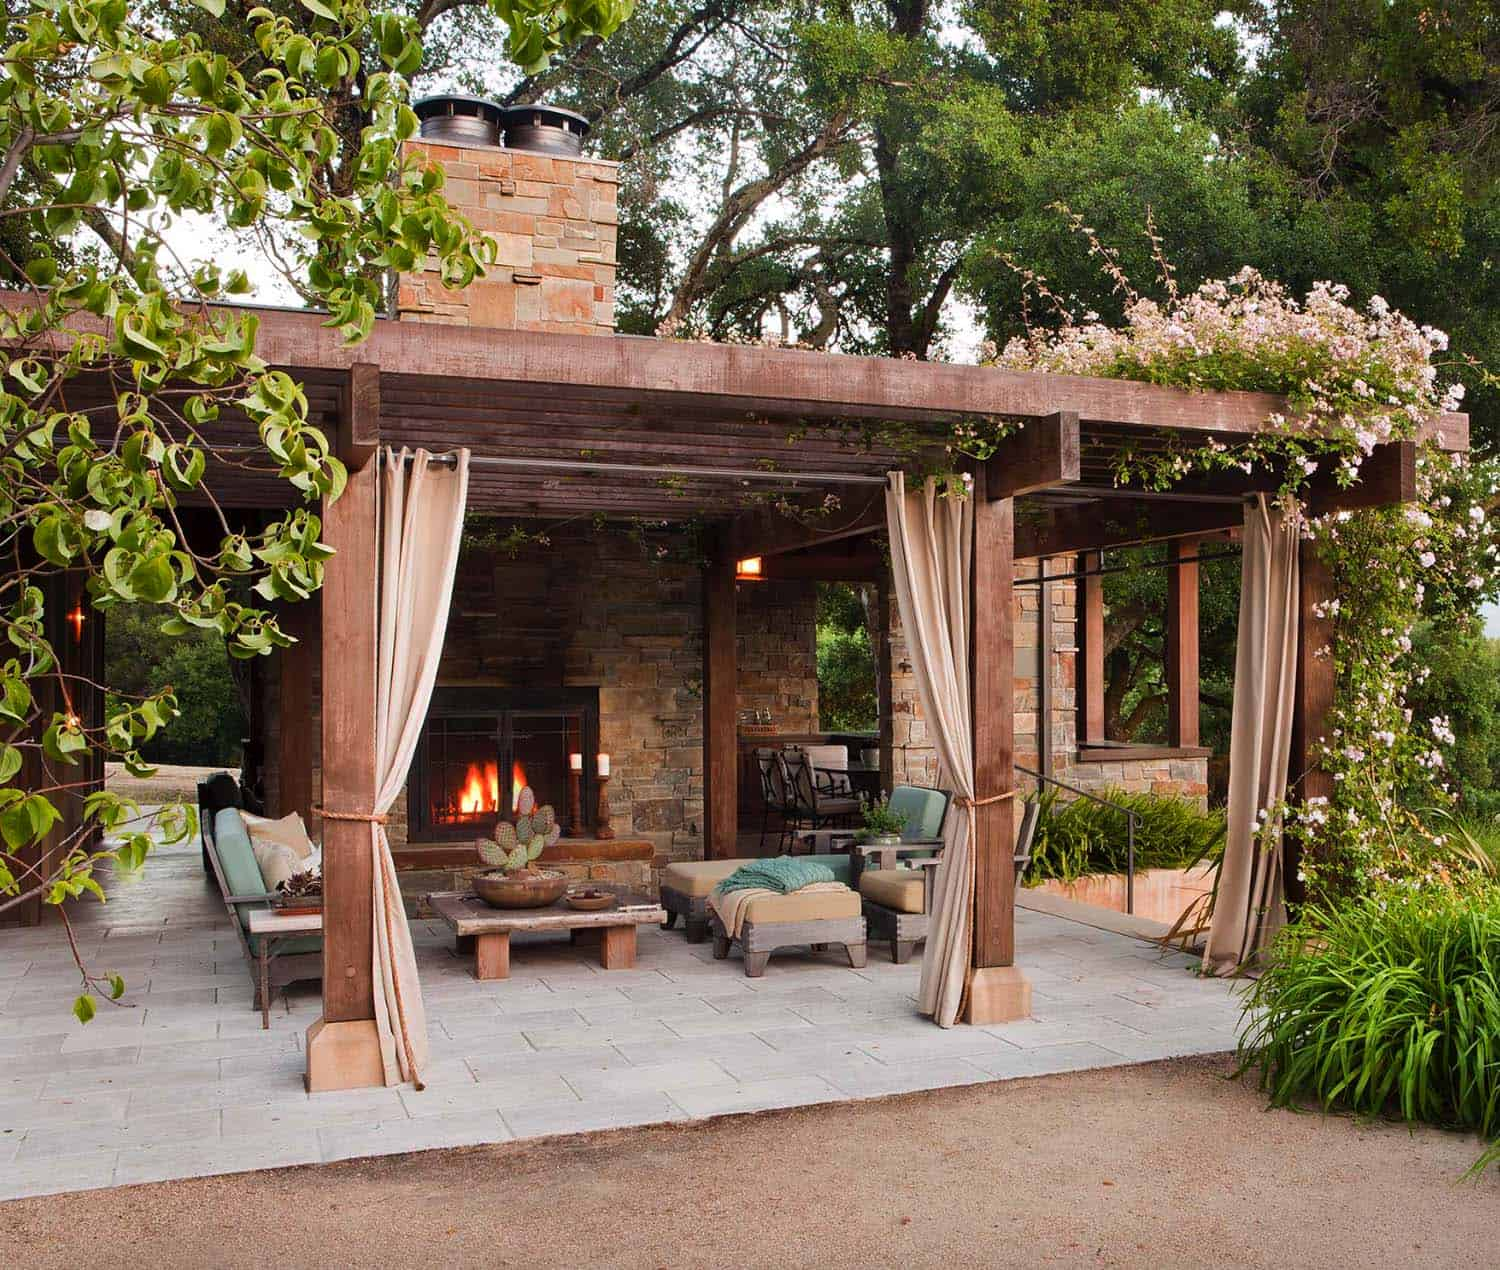 30+ Irresistible outdoor fireplace ideas that will leave ... on Outdoor Kitchen And Fireplace Ideas id=38180